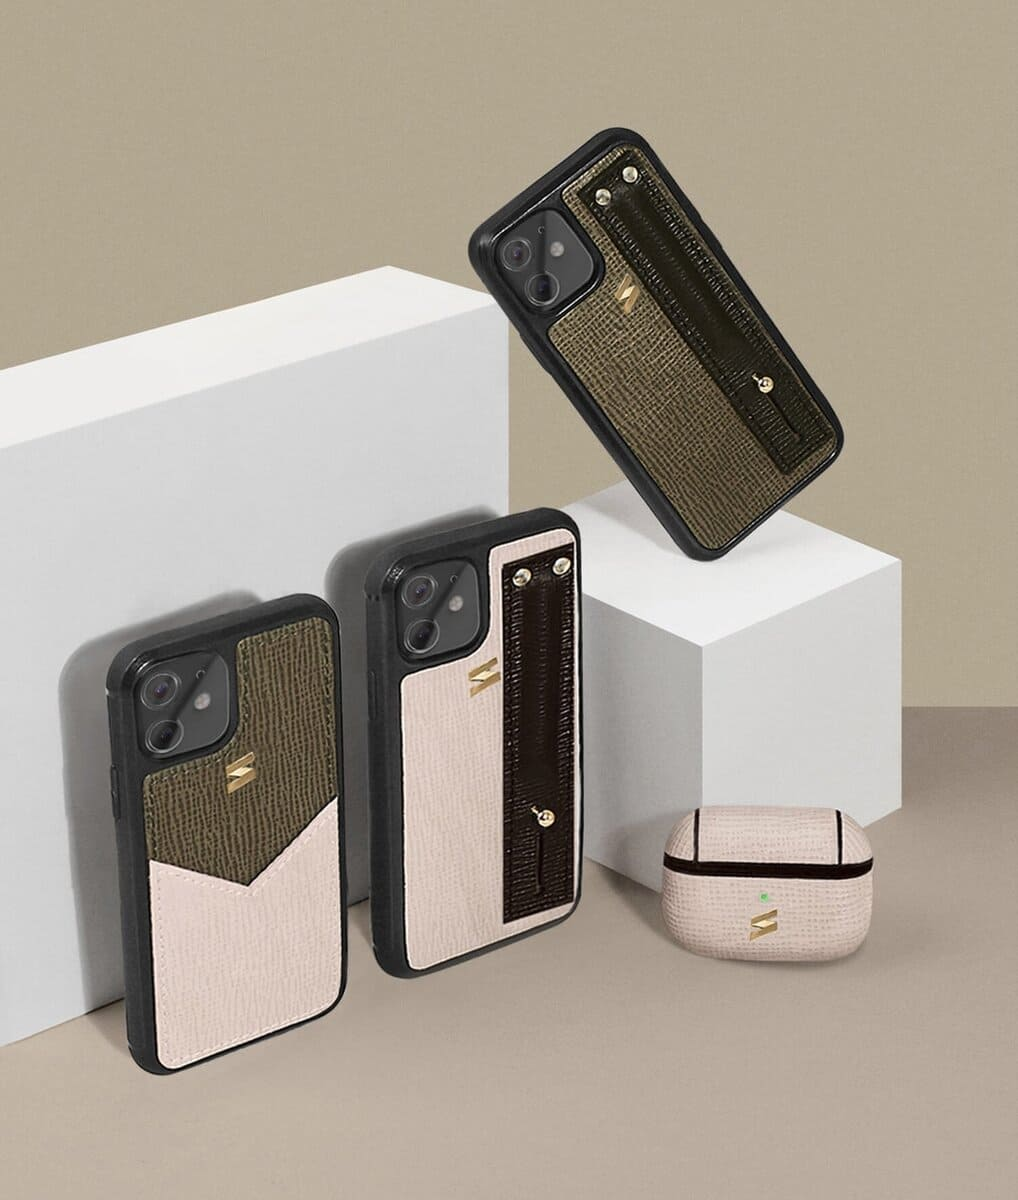 The Corteccia Iphone cases collection by Suritt